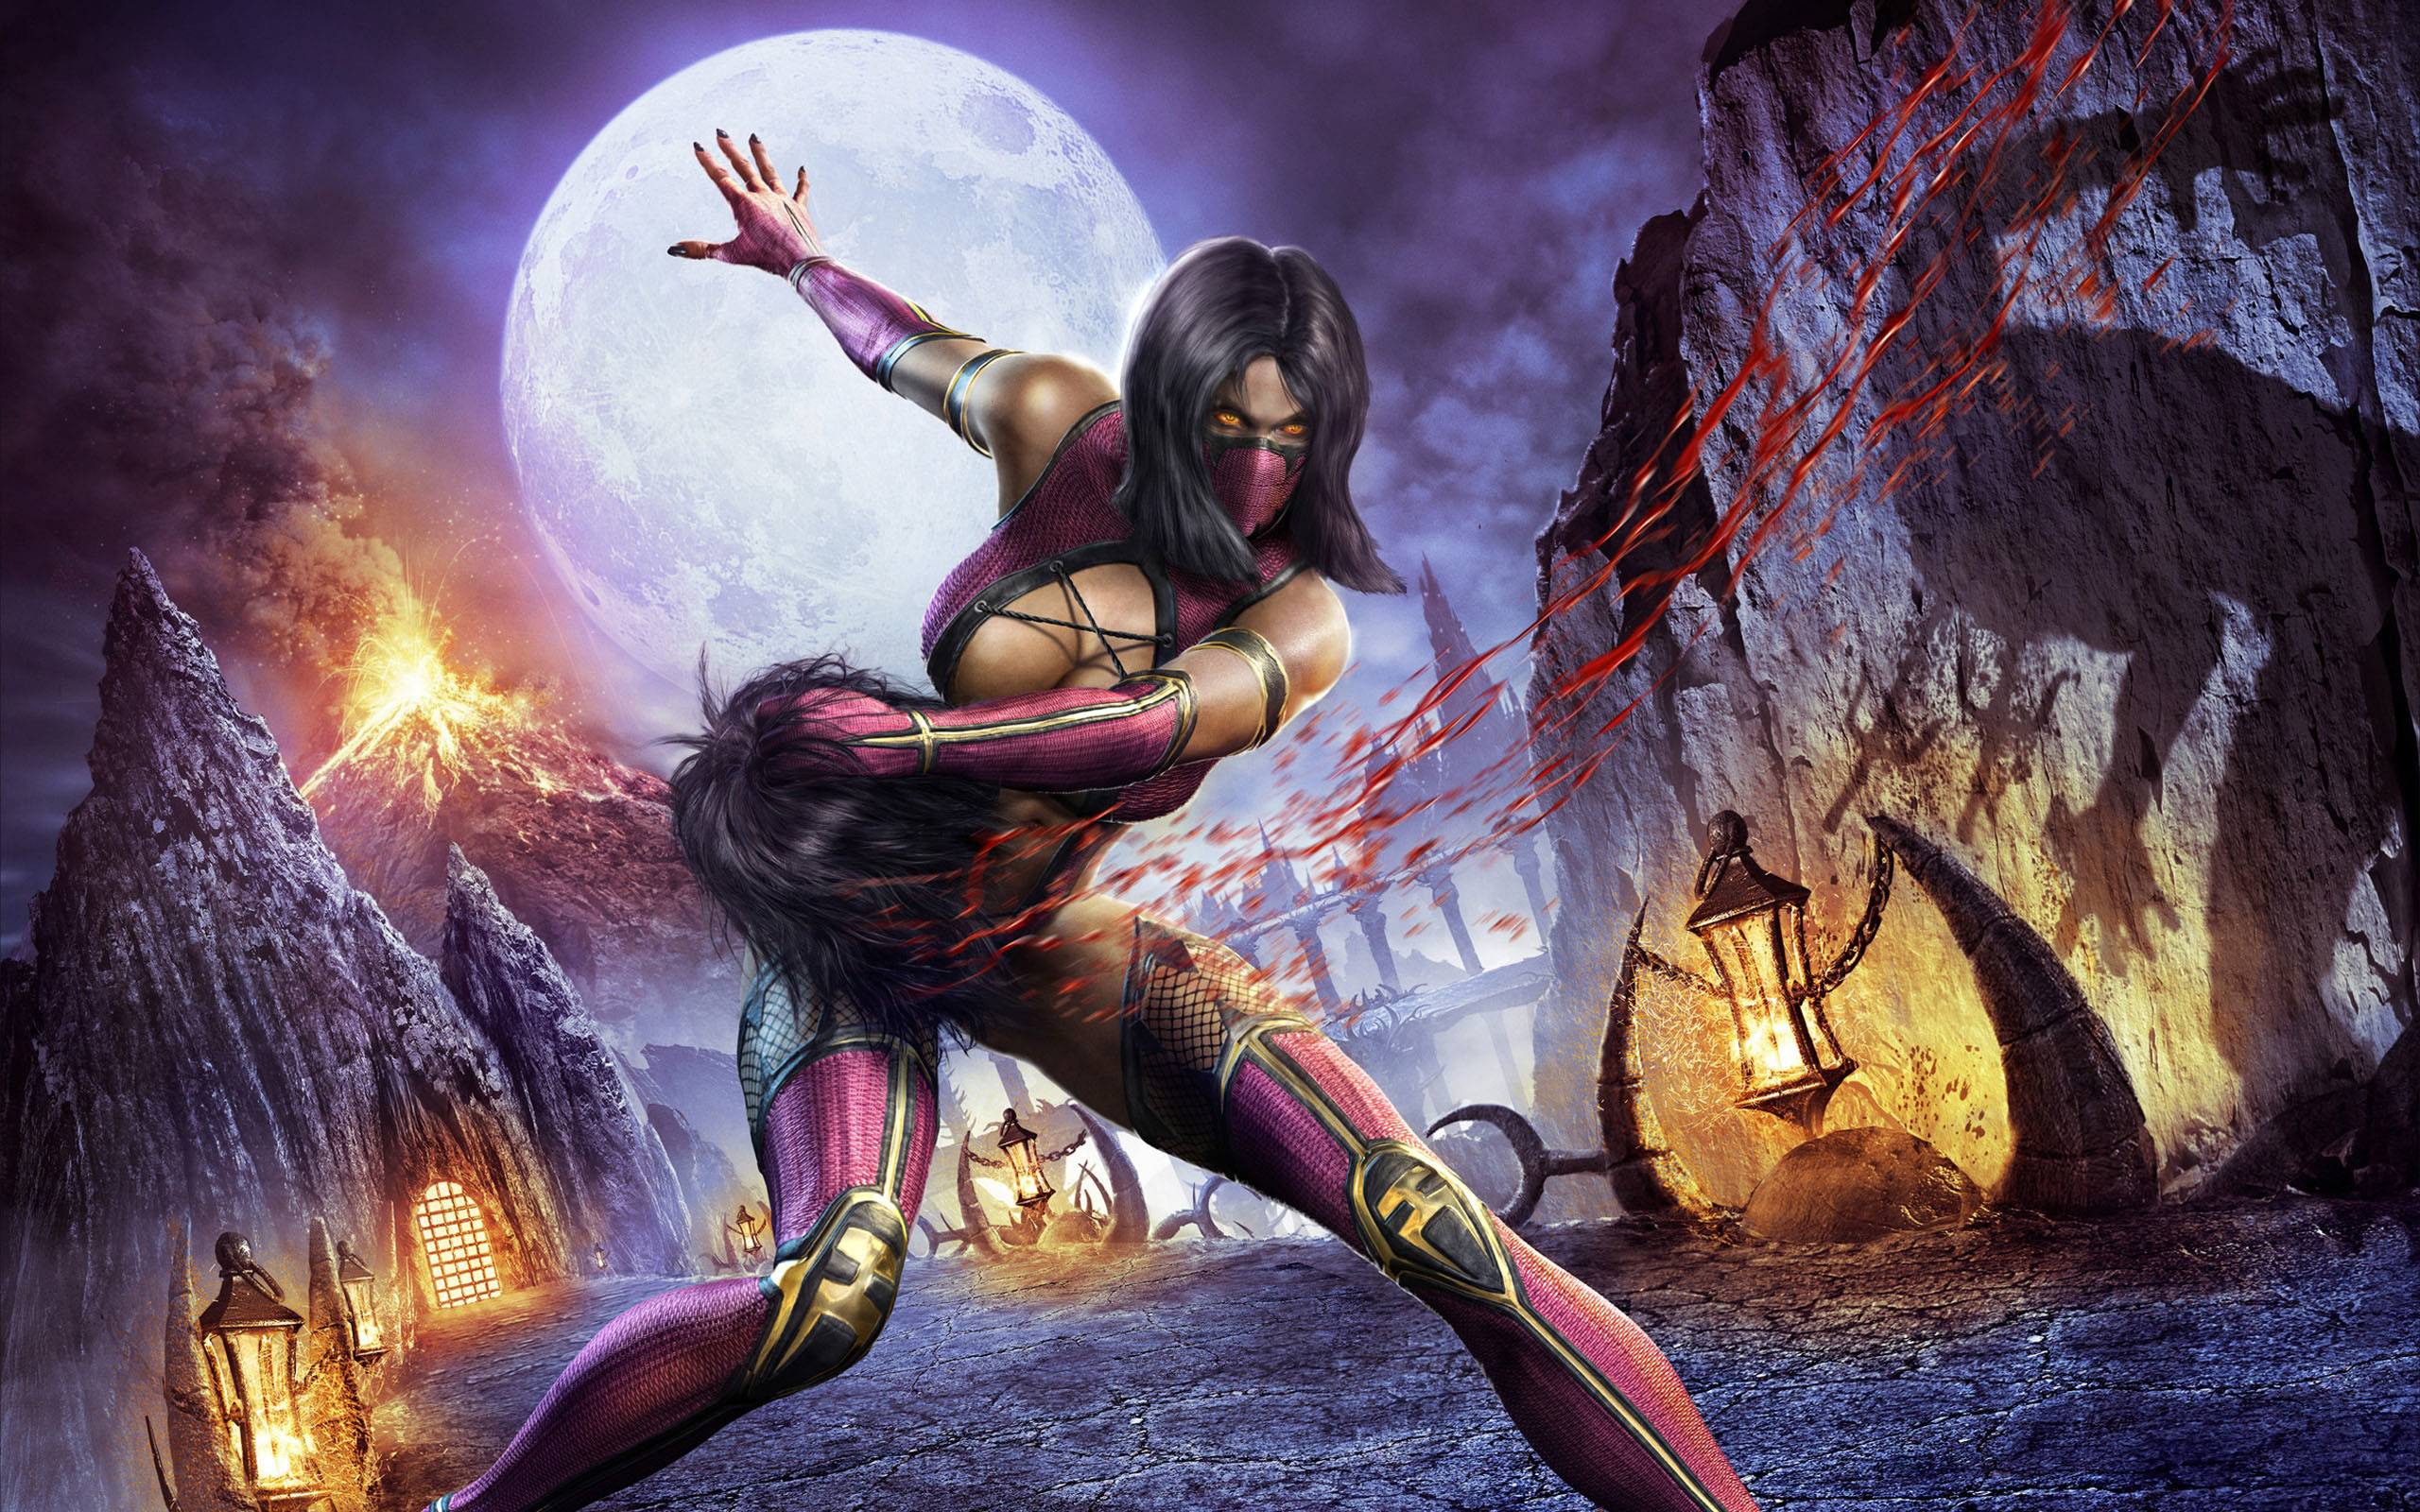 2560x1600 Free New Mortal Kombat X Mileena HD Wallpaper because theDesktop Background  Image for yourportable computer,